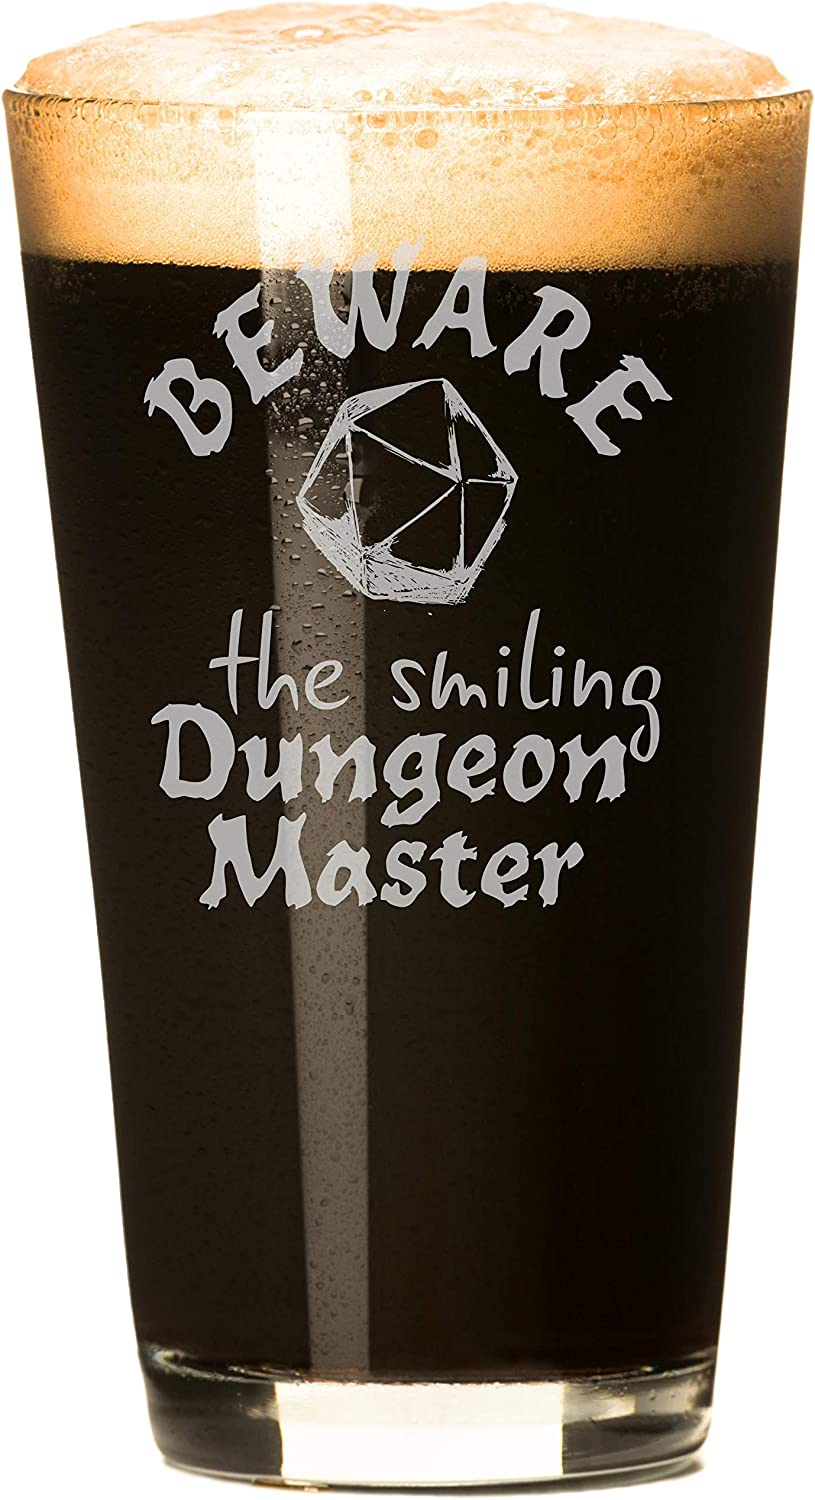 Beware the Smiling Dungeon Master - Dungeons and Dragons Beer Glasses - 2 Glasses